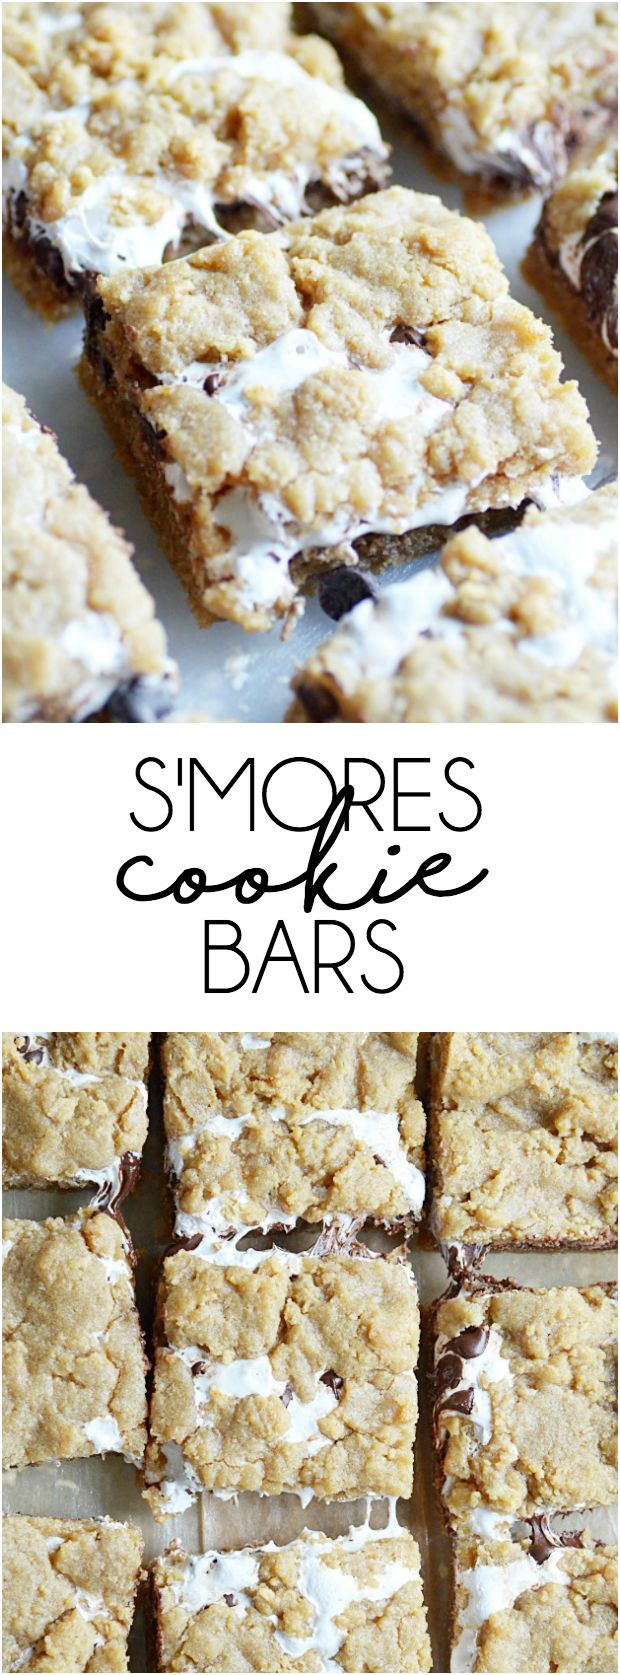 S'mores Cookie Bars: Soft, chewy, and slightly crunchy graham cracker cookie bars with a marshmallow swirl and semi-sweet chocolate chips. #smores #camping #desserts